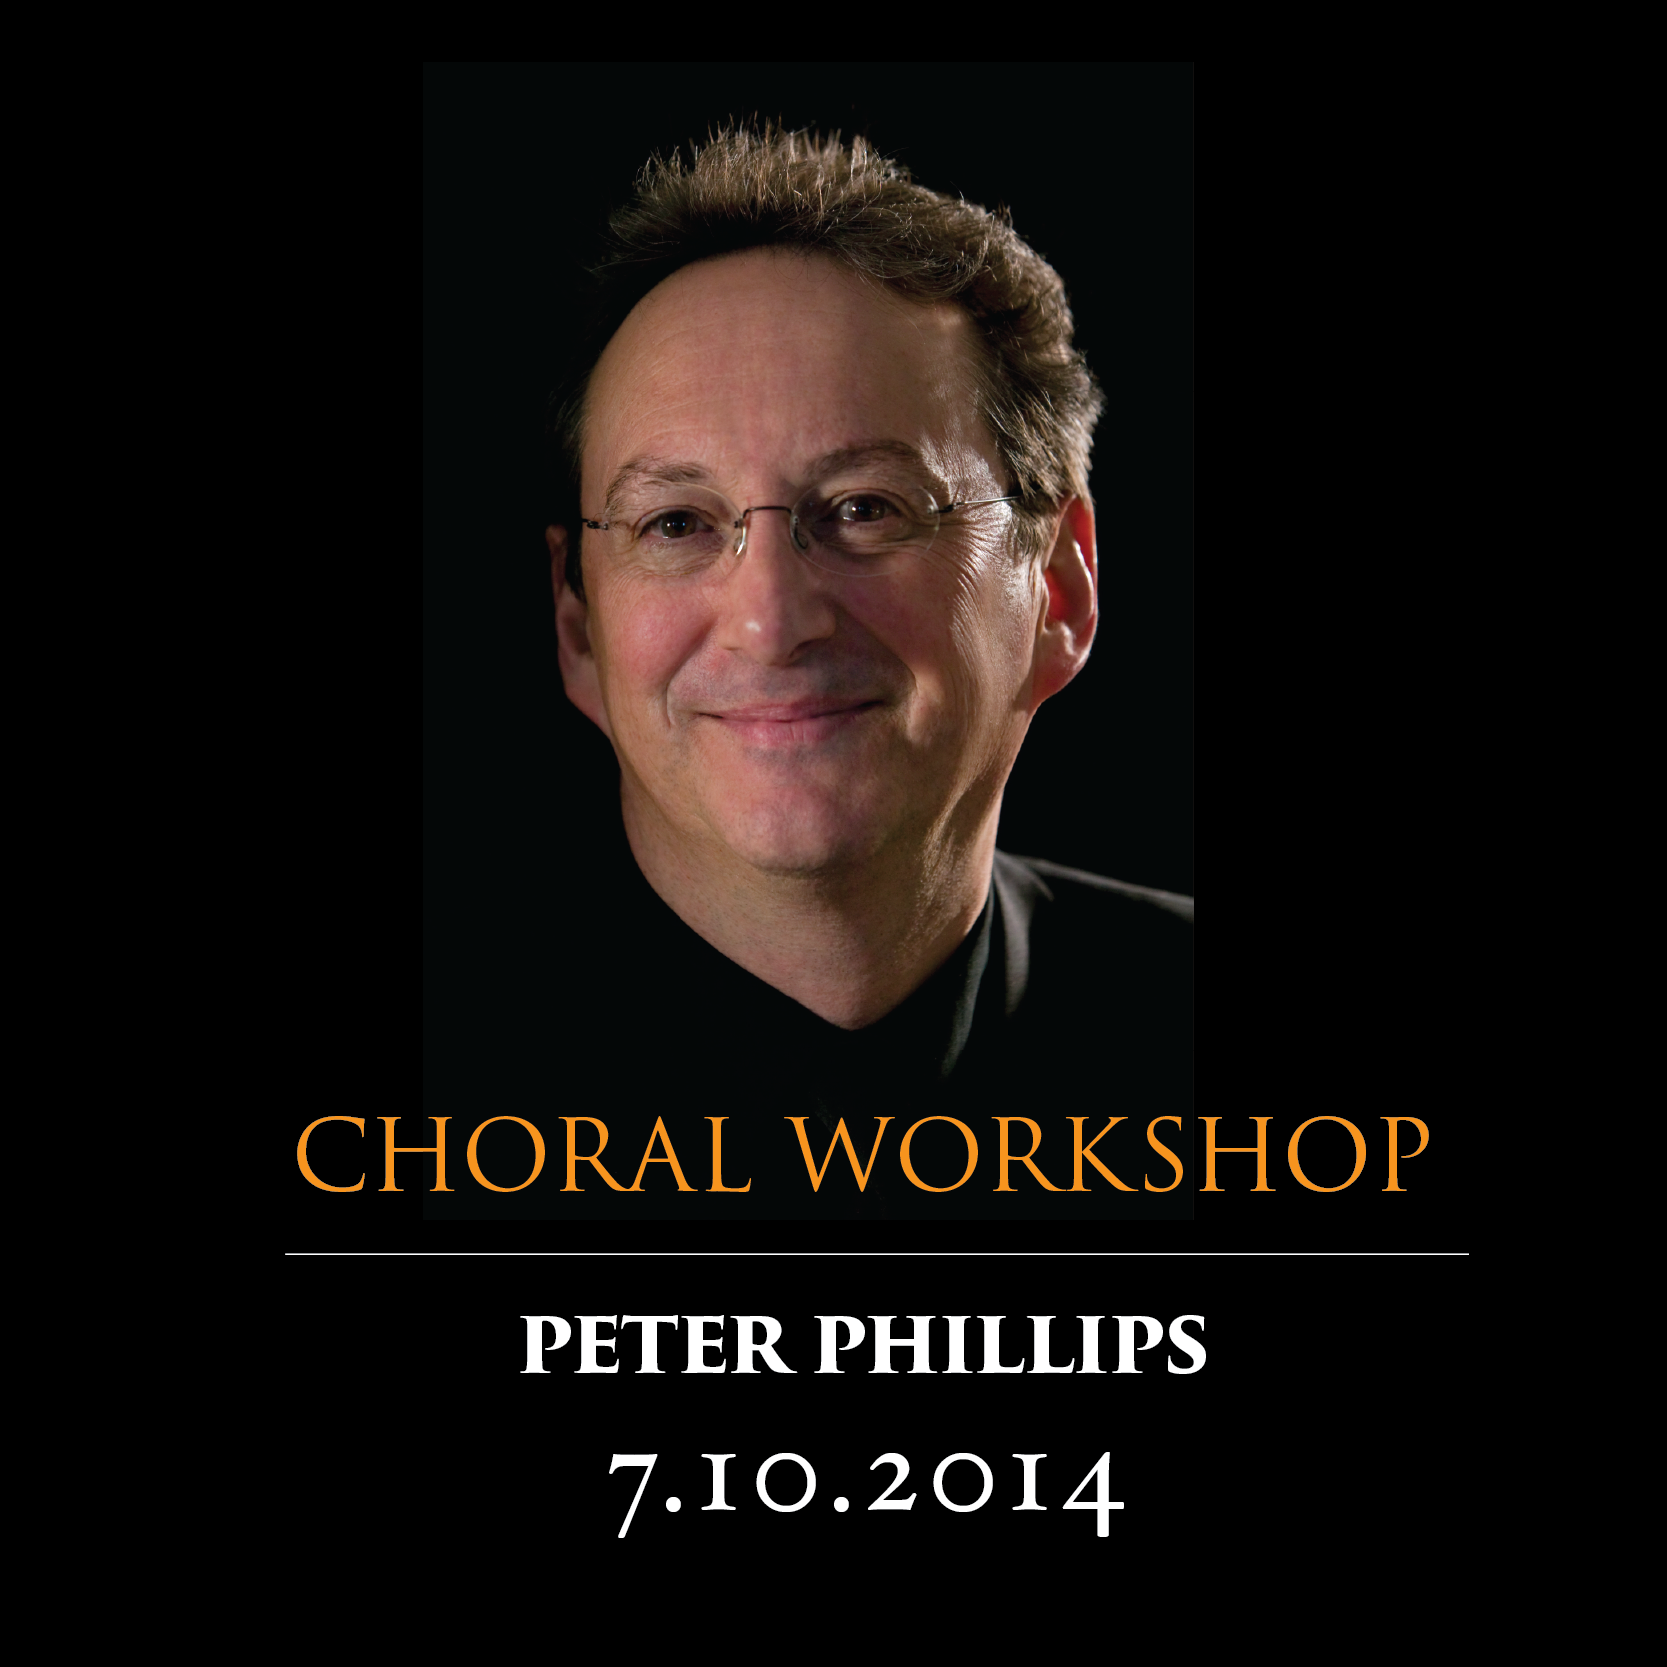 Workshop with Peter Phillips